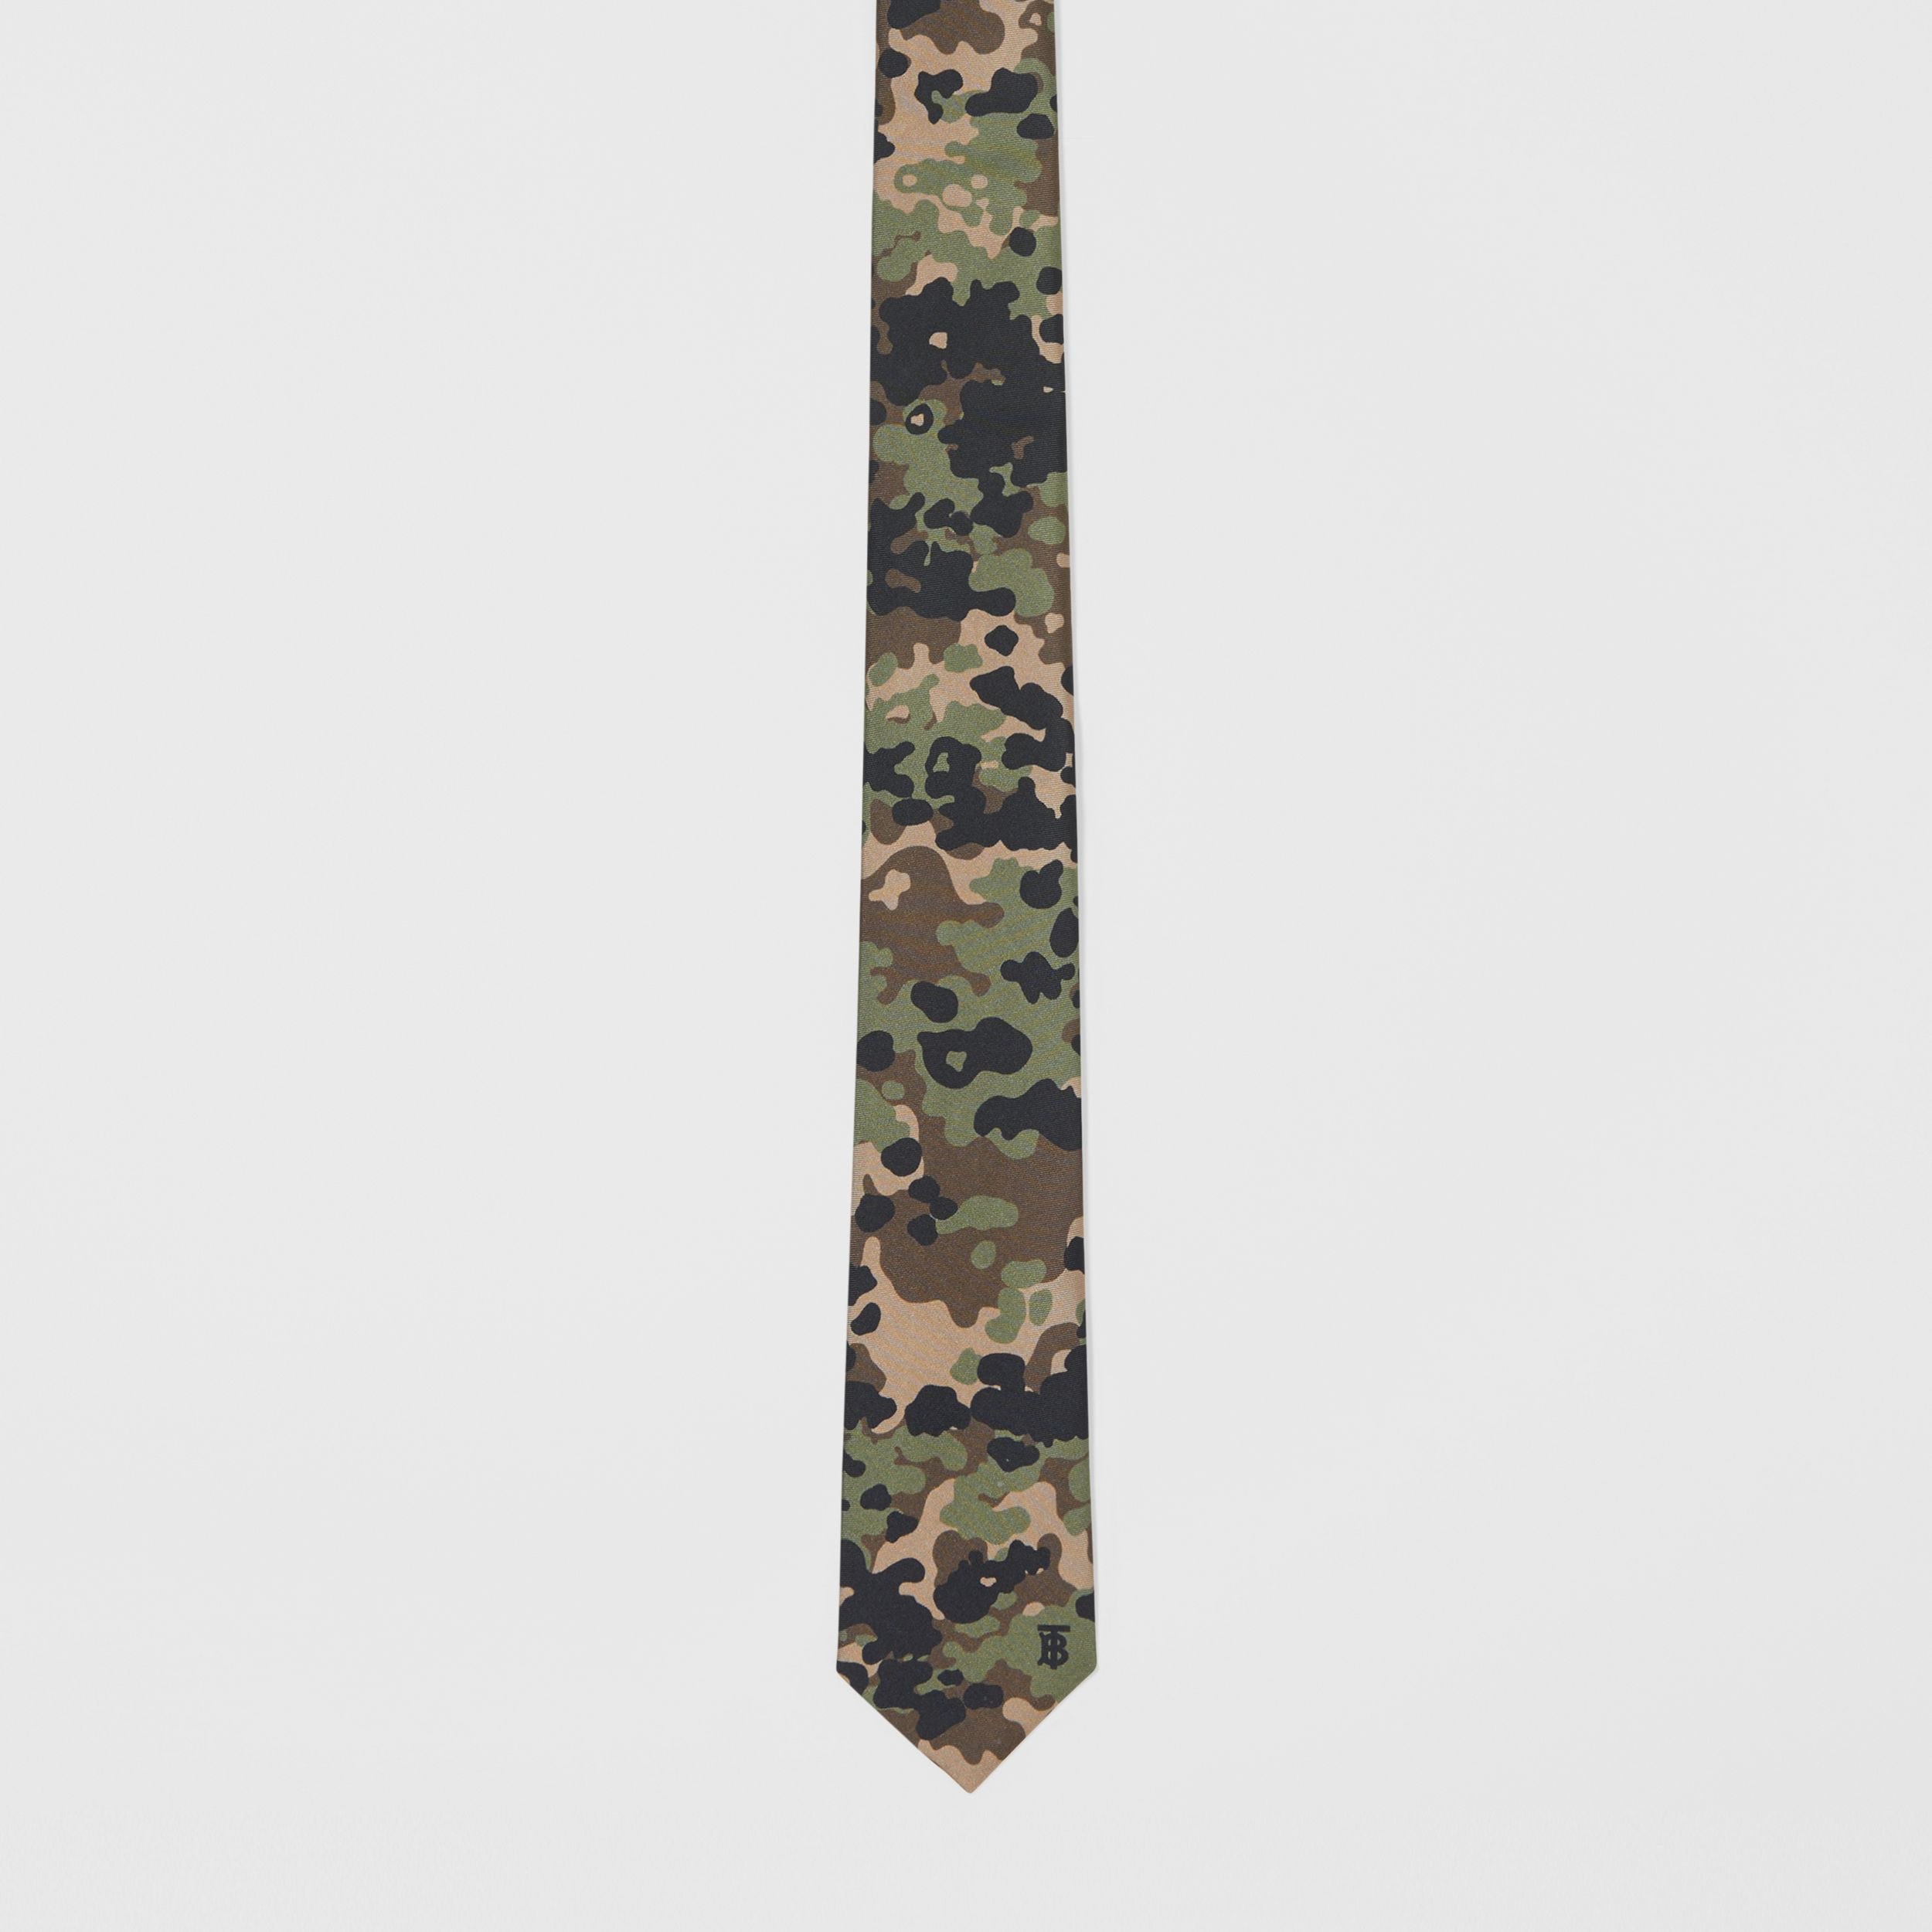 Classic Cut Camouflage Print Silk Tie in Khaki Green - Men | Burberry - 4